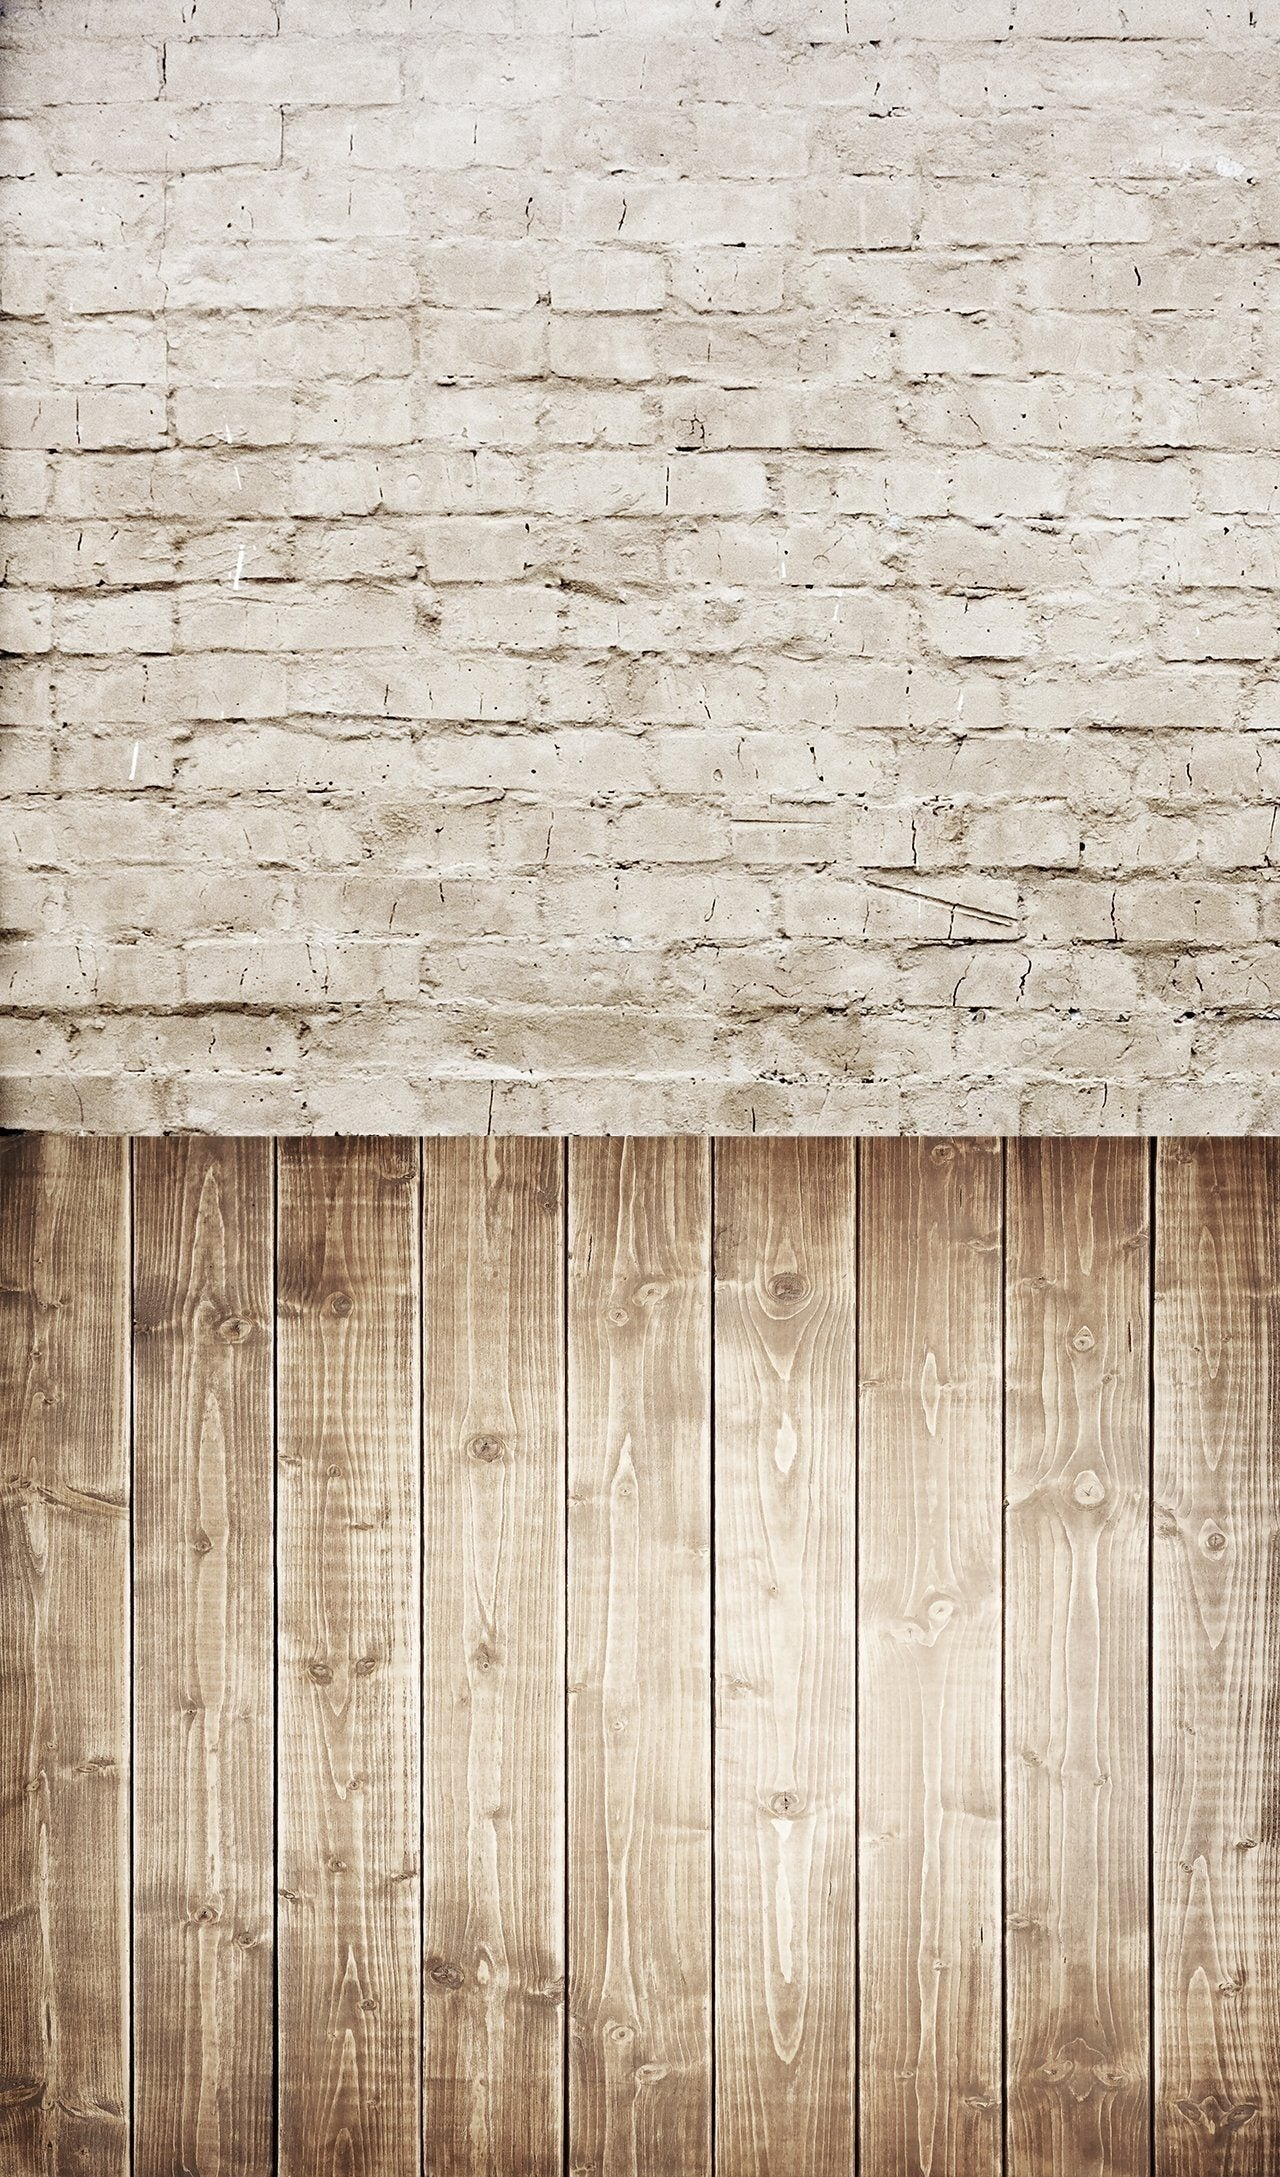 Wooden Floor & Sandy Brick Wall